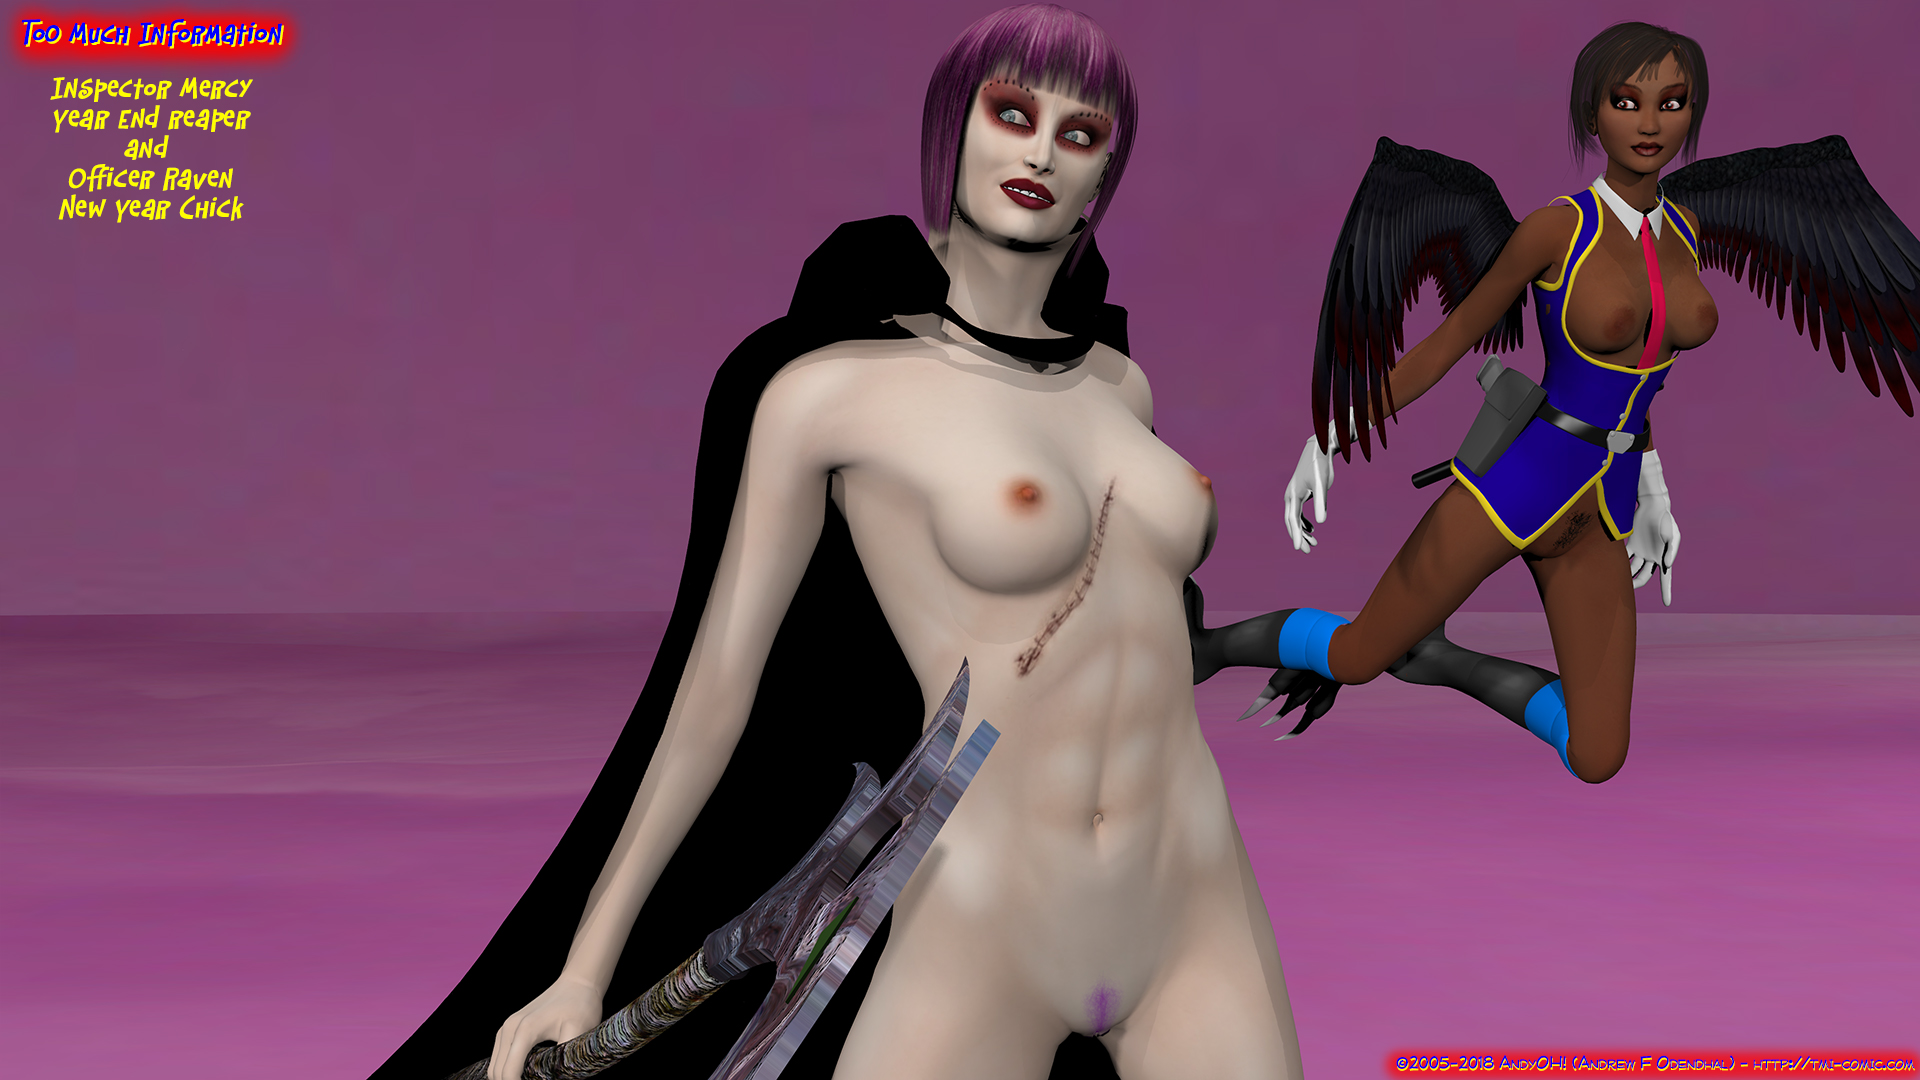 Mercy_and_Raven-190103_5j54fU5F